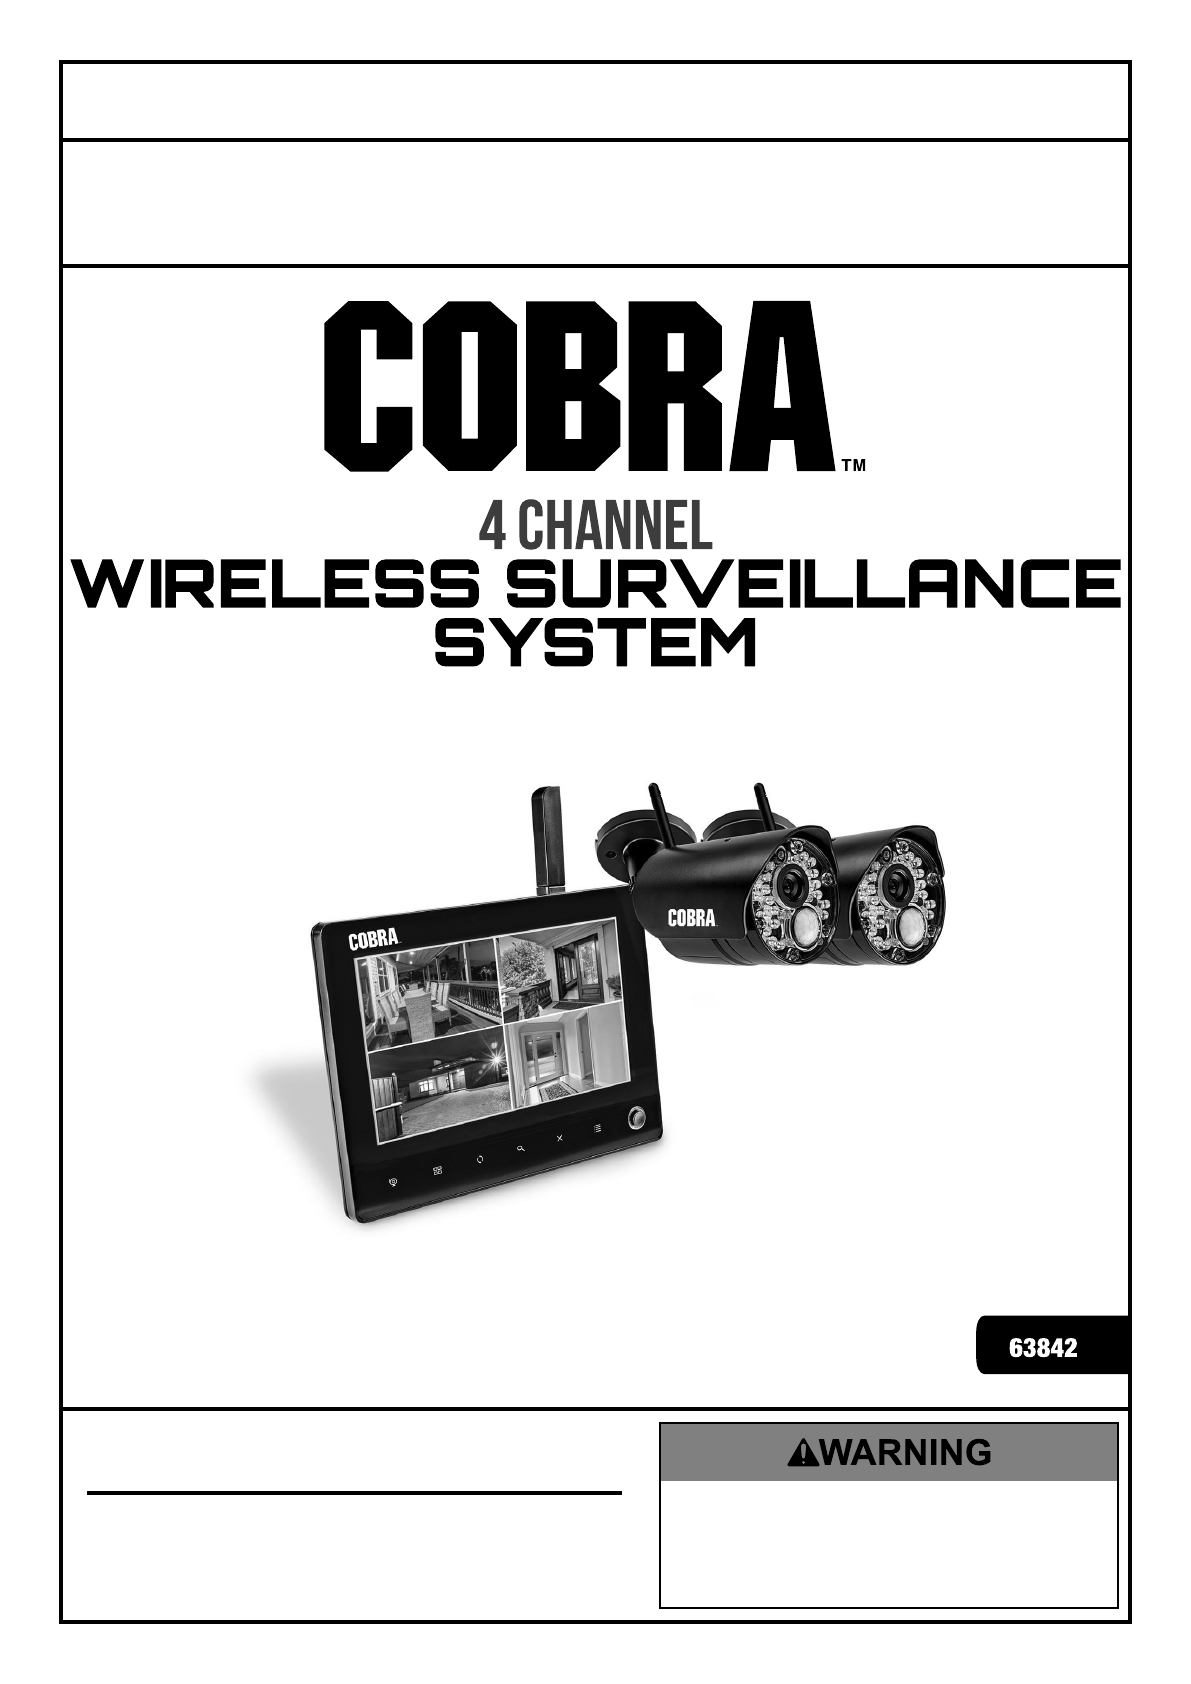 Manual For The 63842 4 Channel Wireless Surveillance System With 2